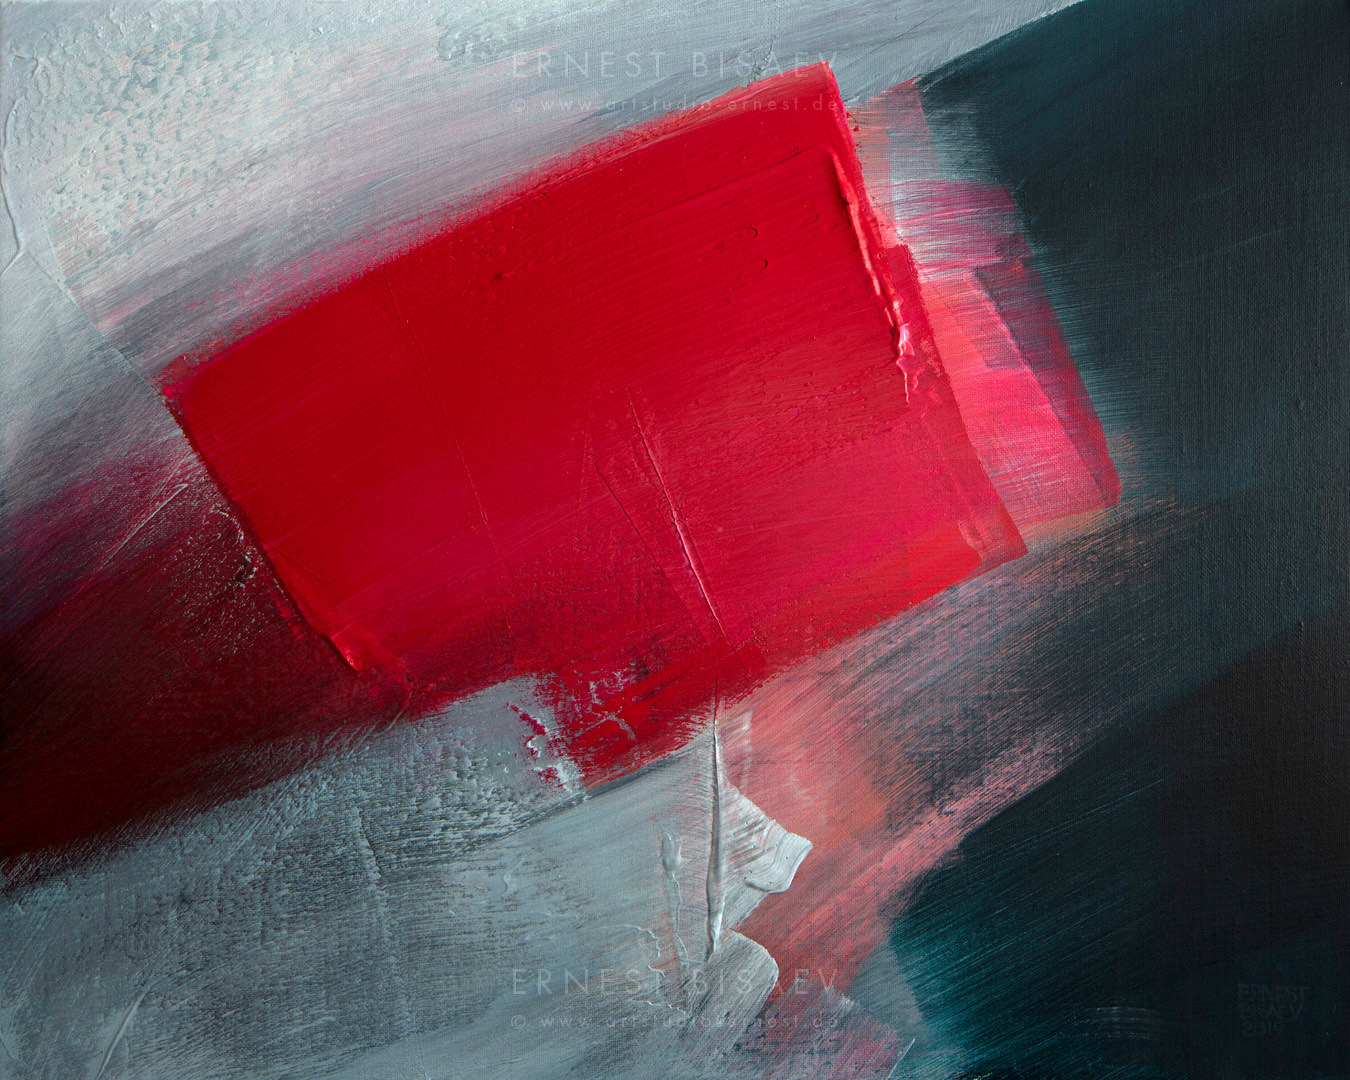 Gray and Red 231019, Acrylic on Canvas, 80x100cm, 2019 © Ernest Bisaev